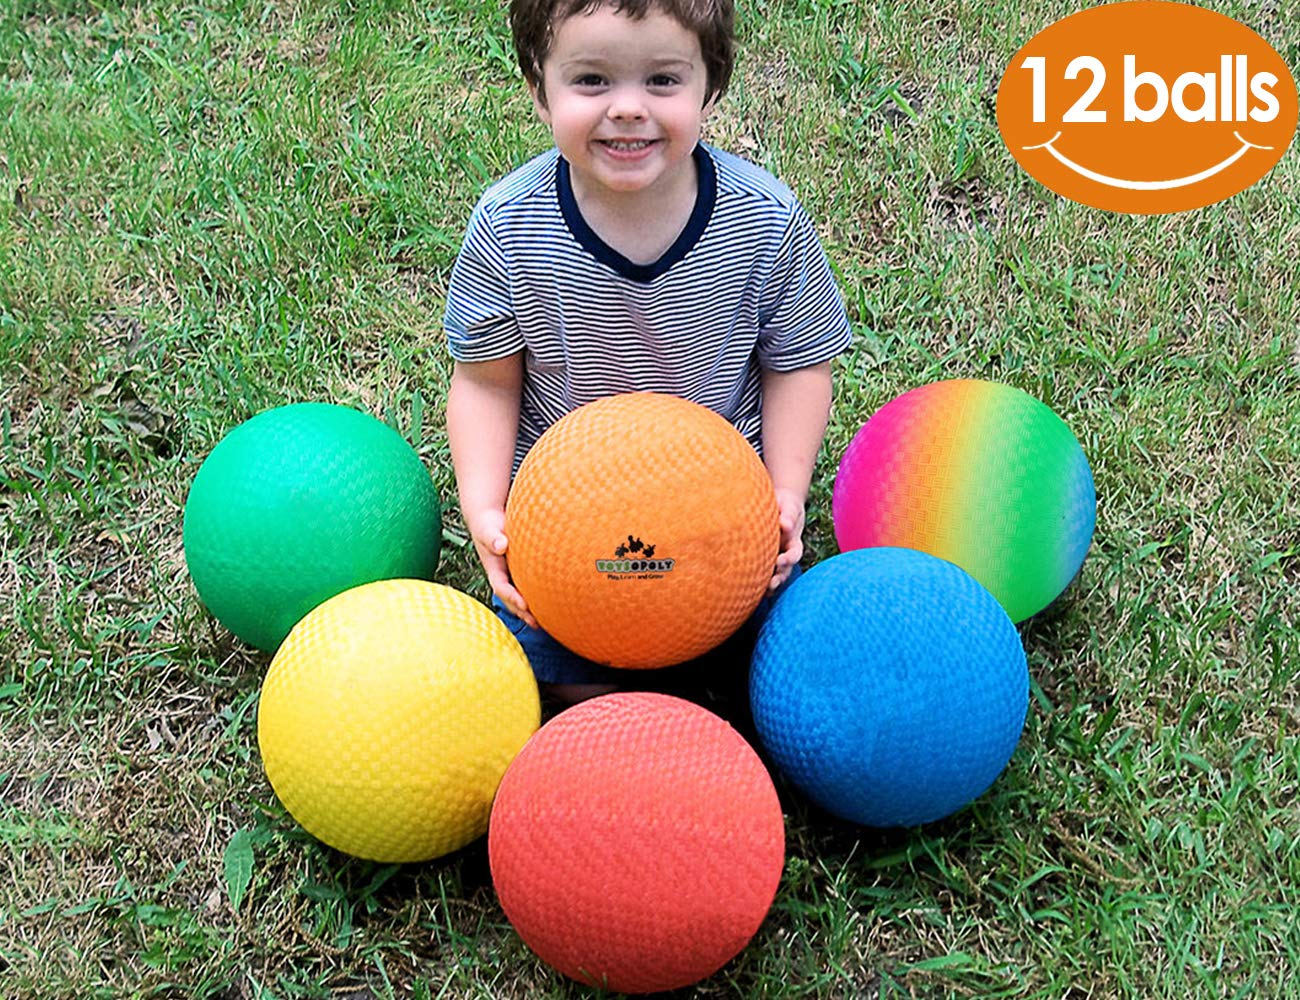 ToysOpoly Playground Balls 8.5 inch Dodgeball (Set of 12) Kickball for Kids and Adults - Official Size for Dodge Ball, Handball, Camps and Smart School + Free Pump & Mesh Bag by ToysOpoly